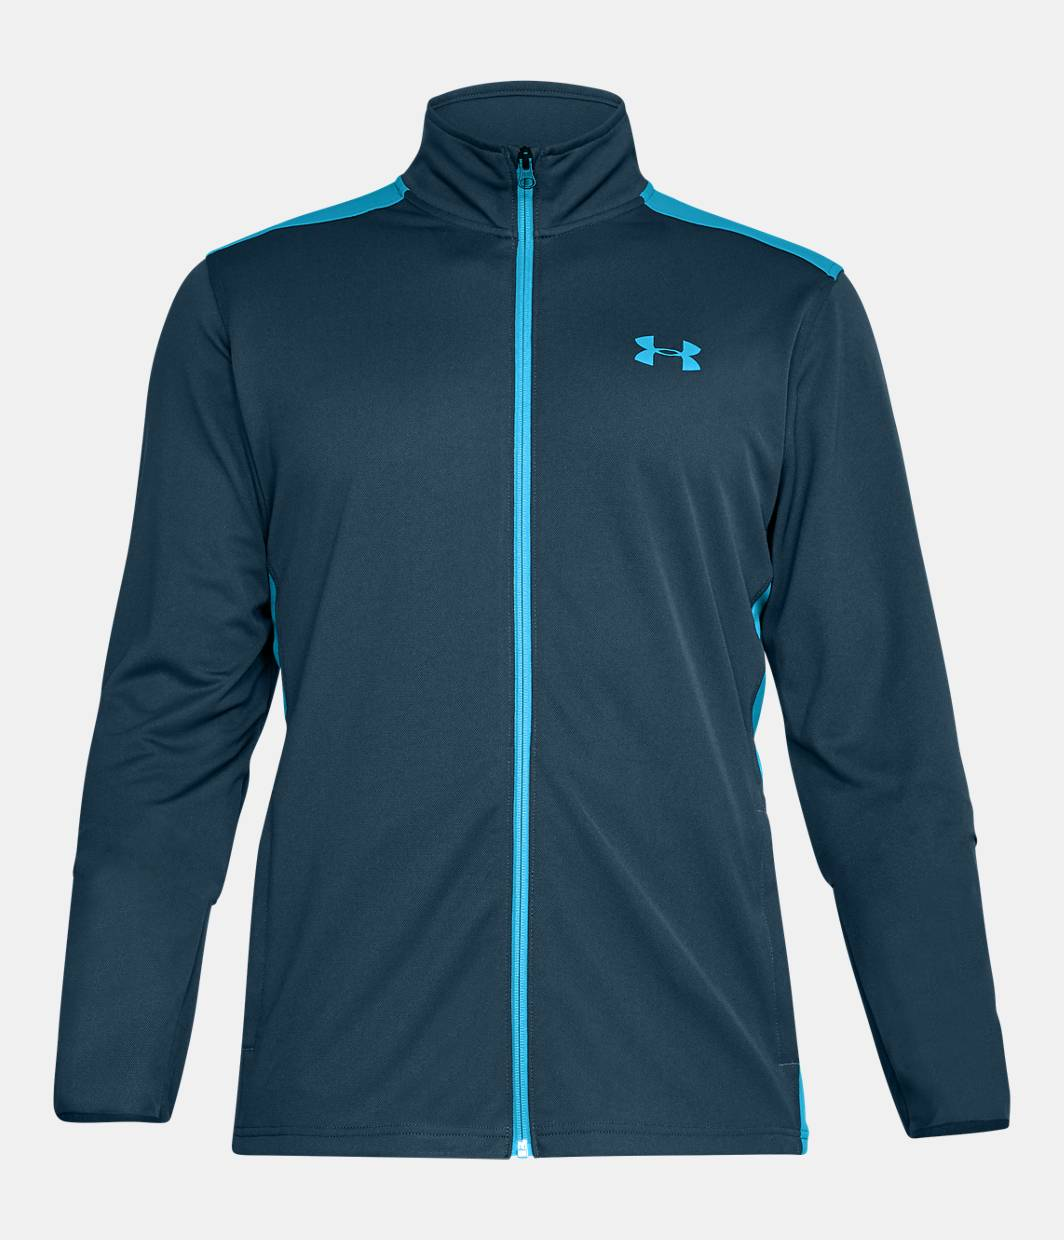 Under Armour Maverick Mens Jackets